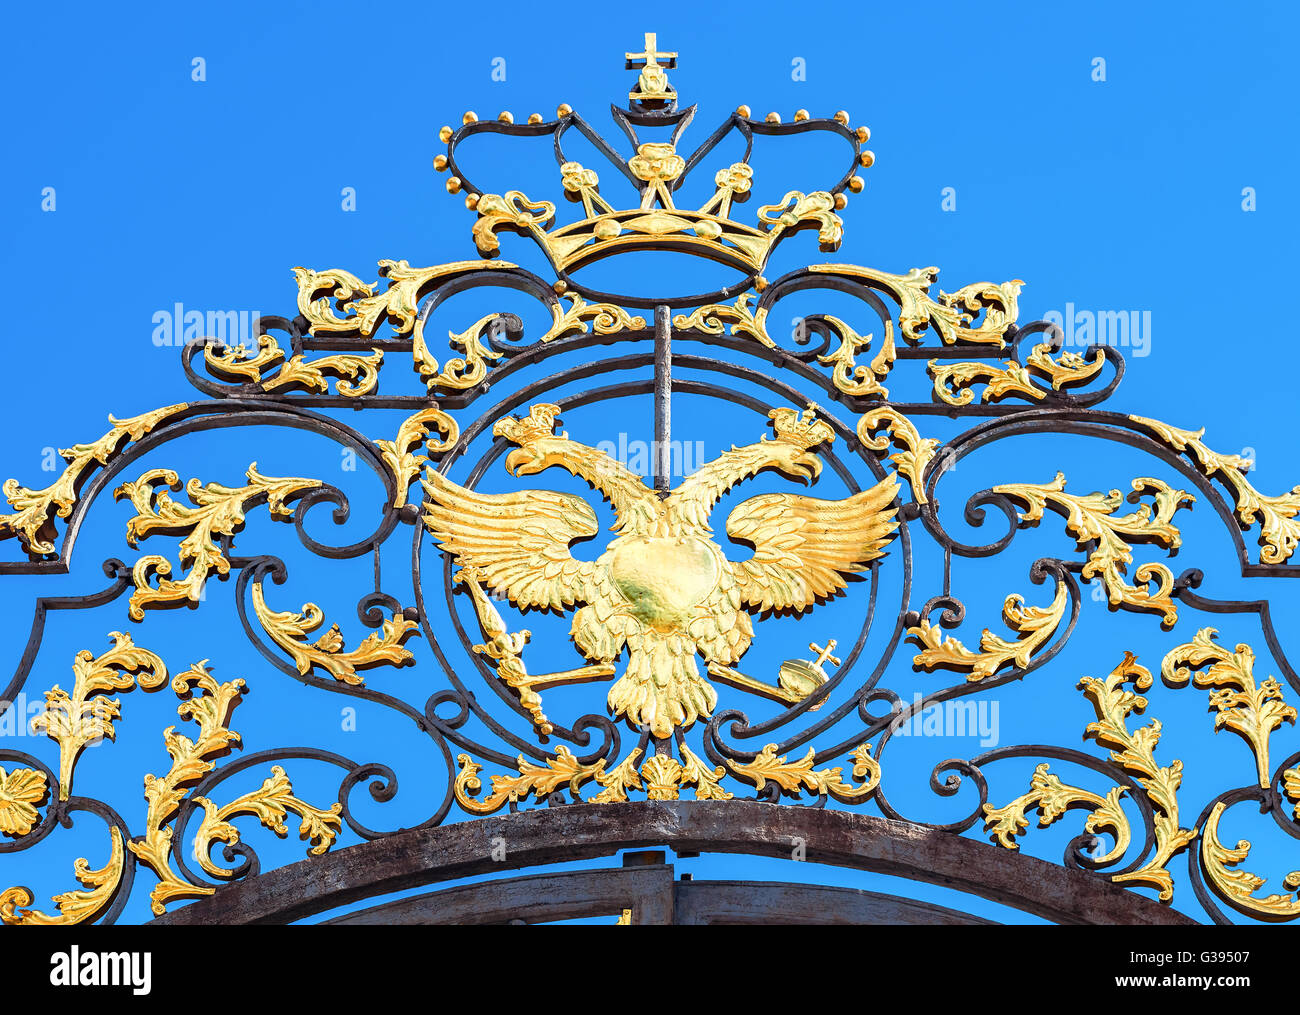 Openwork gate of Catherine Palace - the summer residence of the Russian tsars - Stock Image